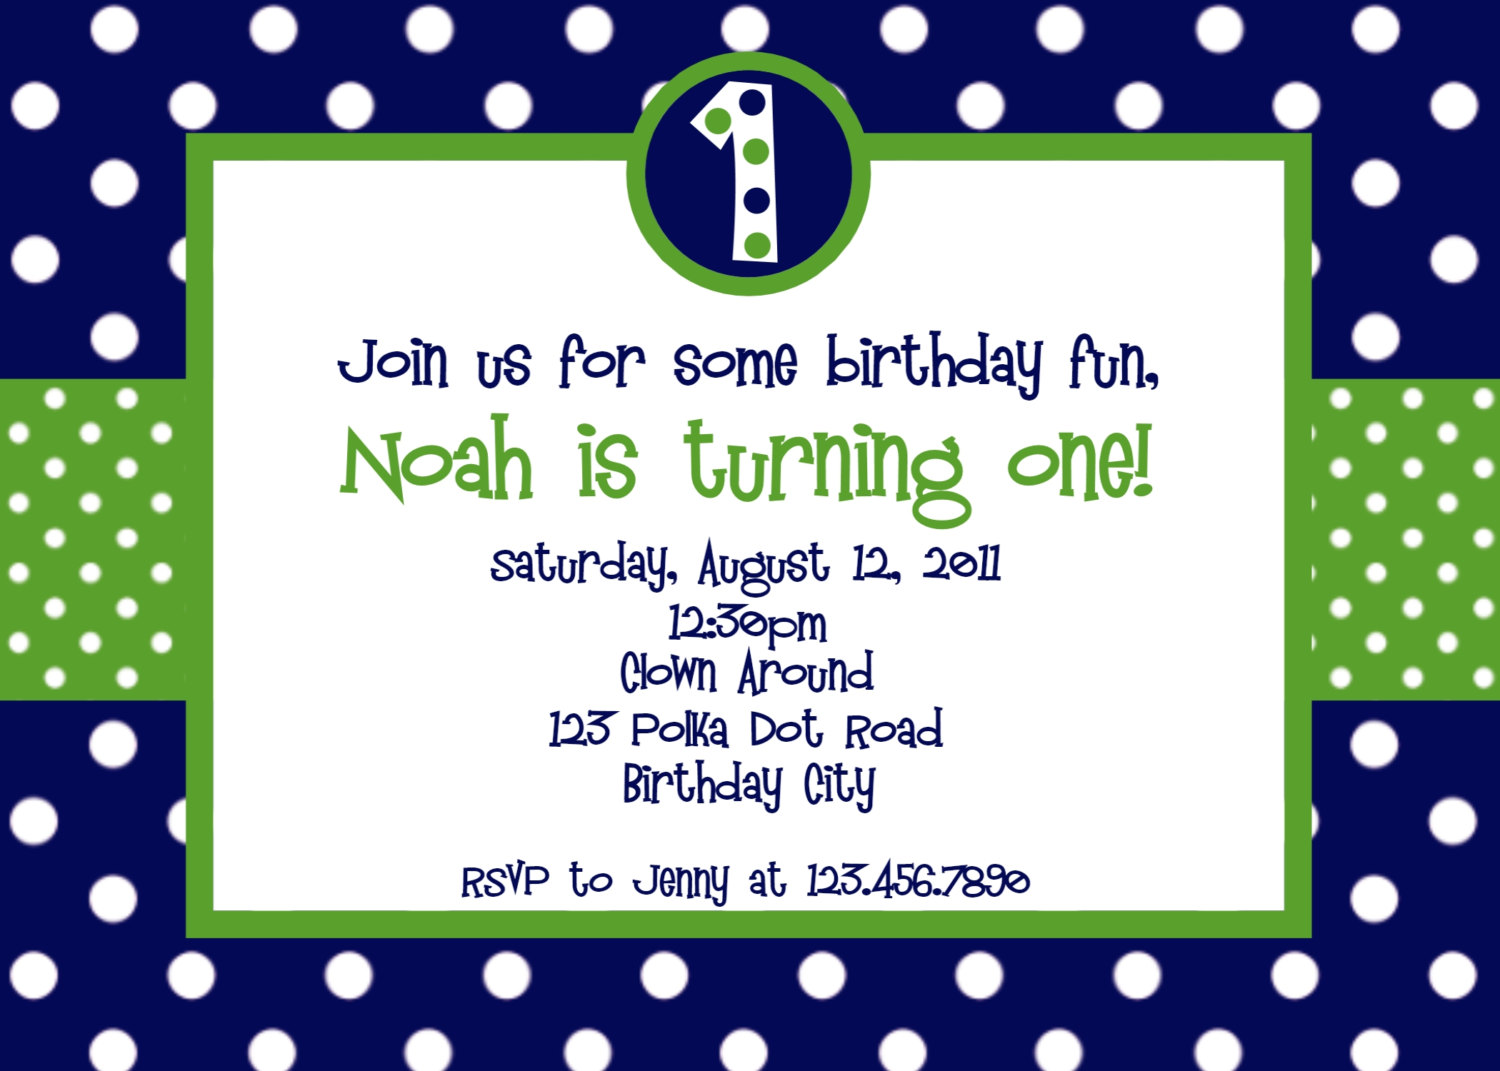 printable birthday invitations, boys party invites, Birthday invitations